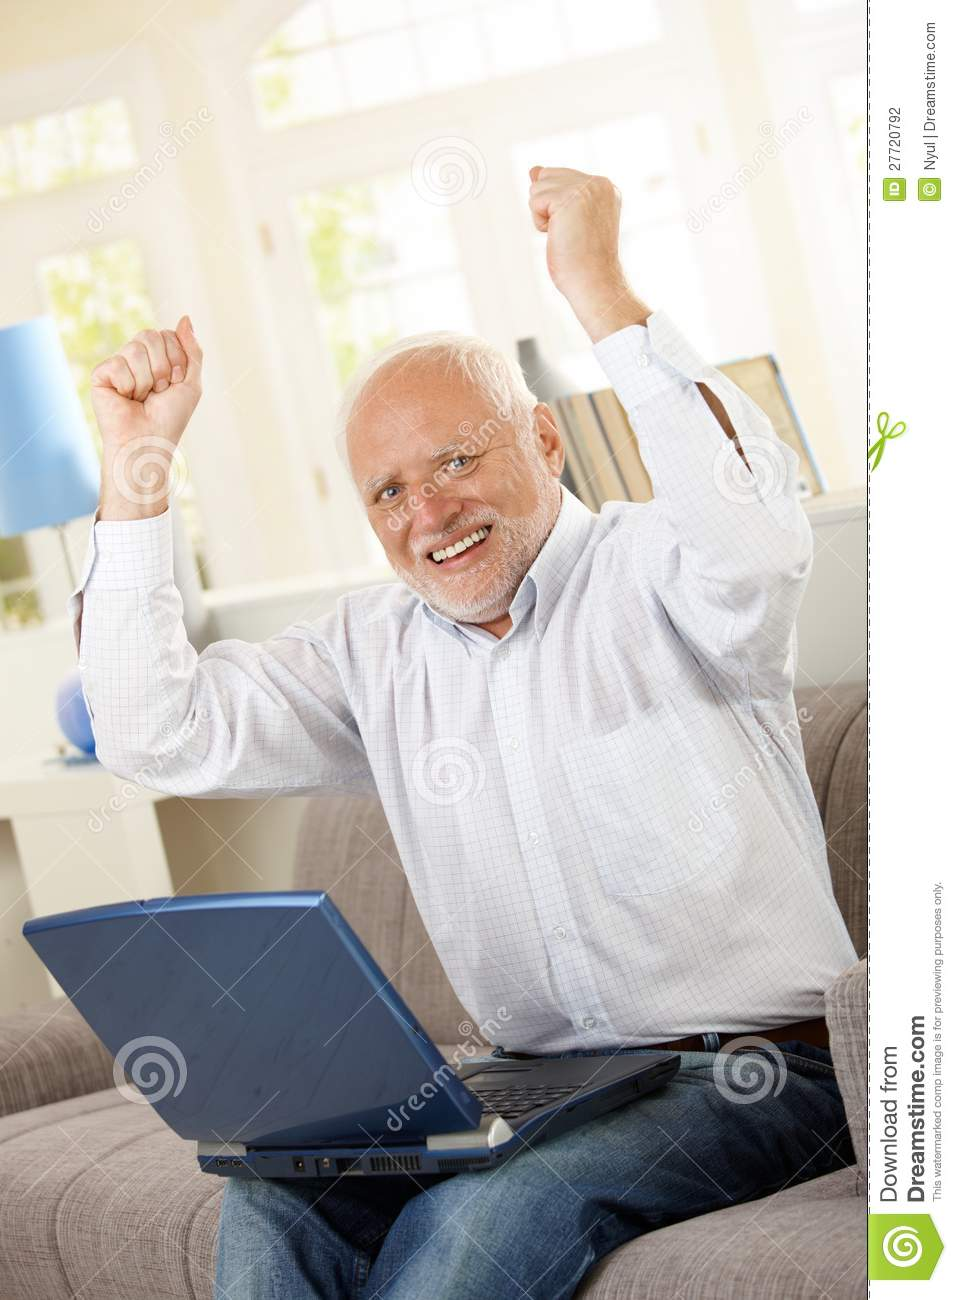 Happy Old Man Sitting On Sofa With Laptop Stock Photo Image Of